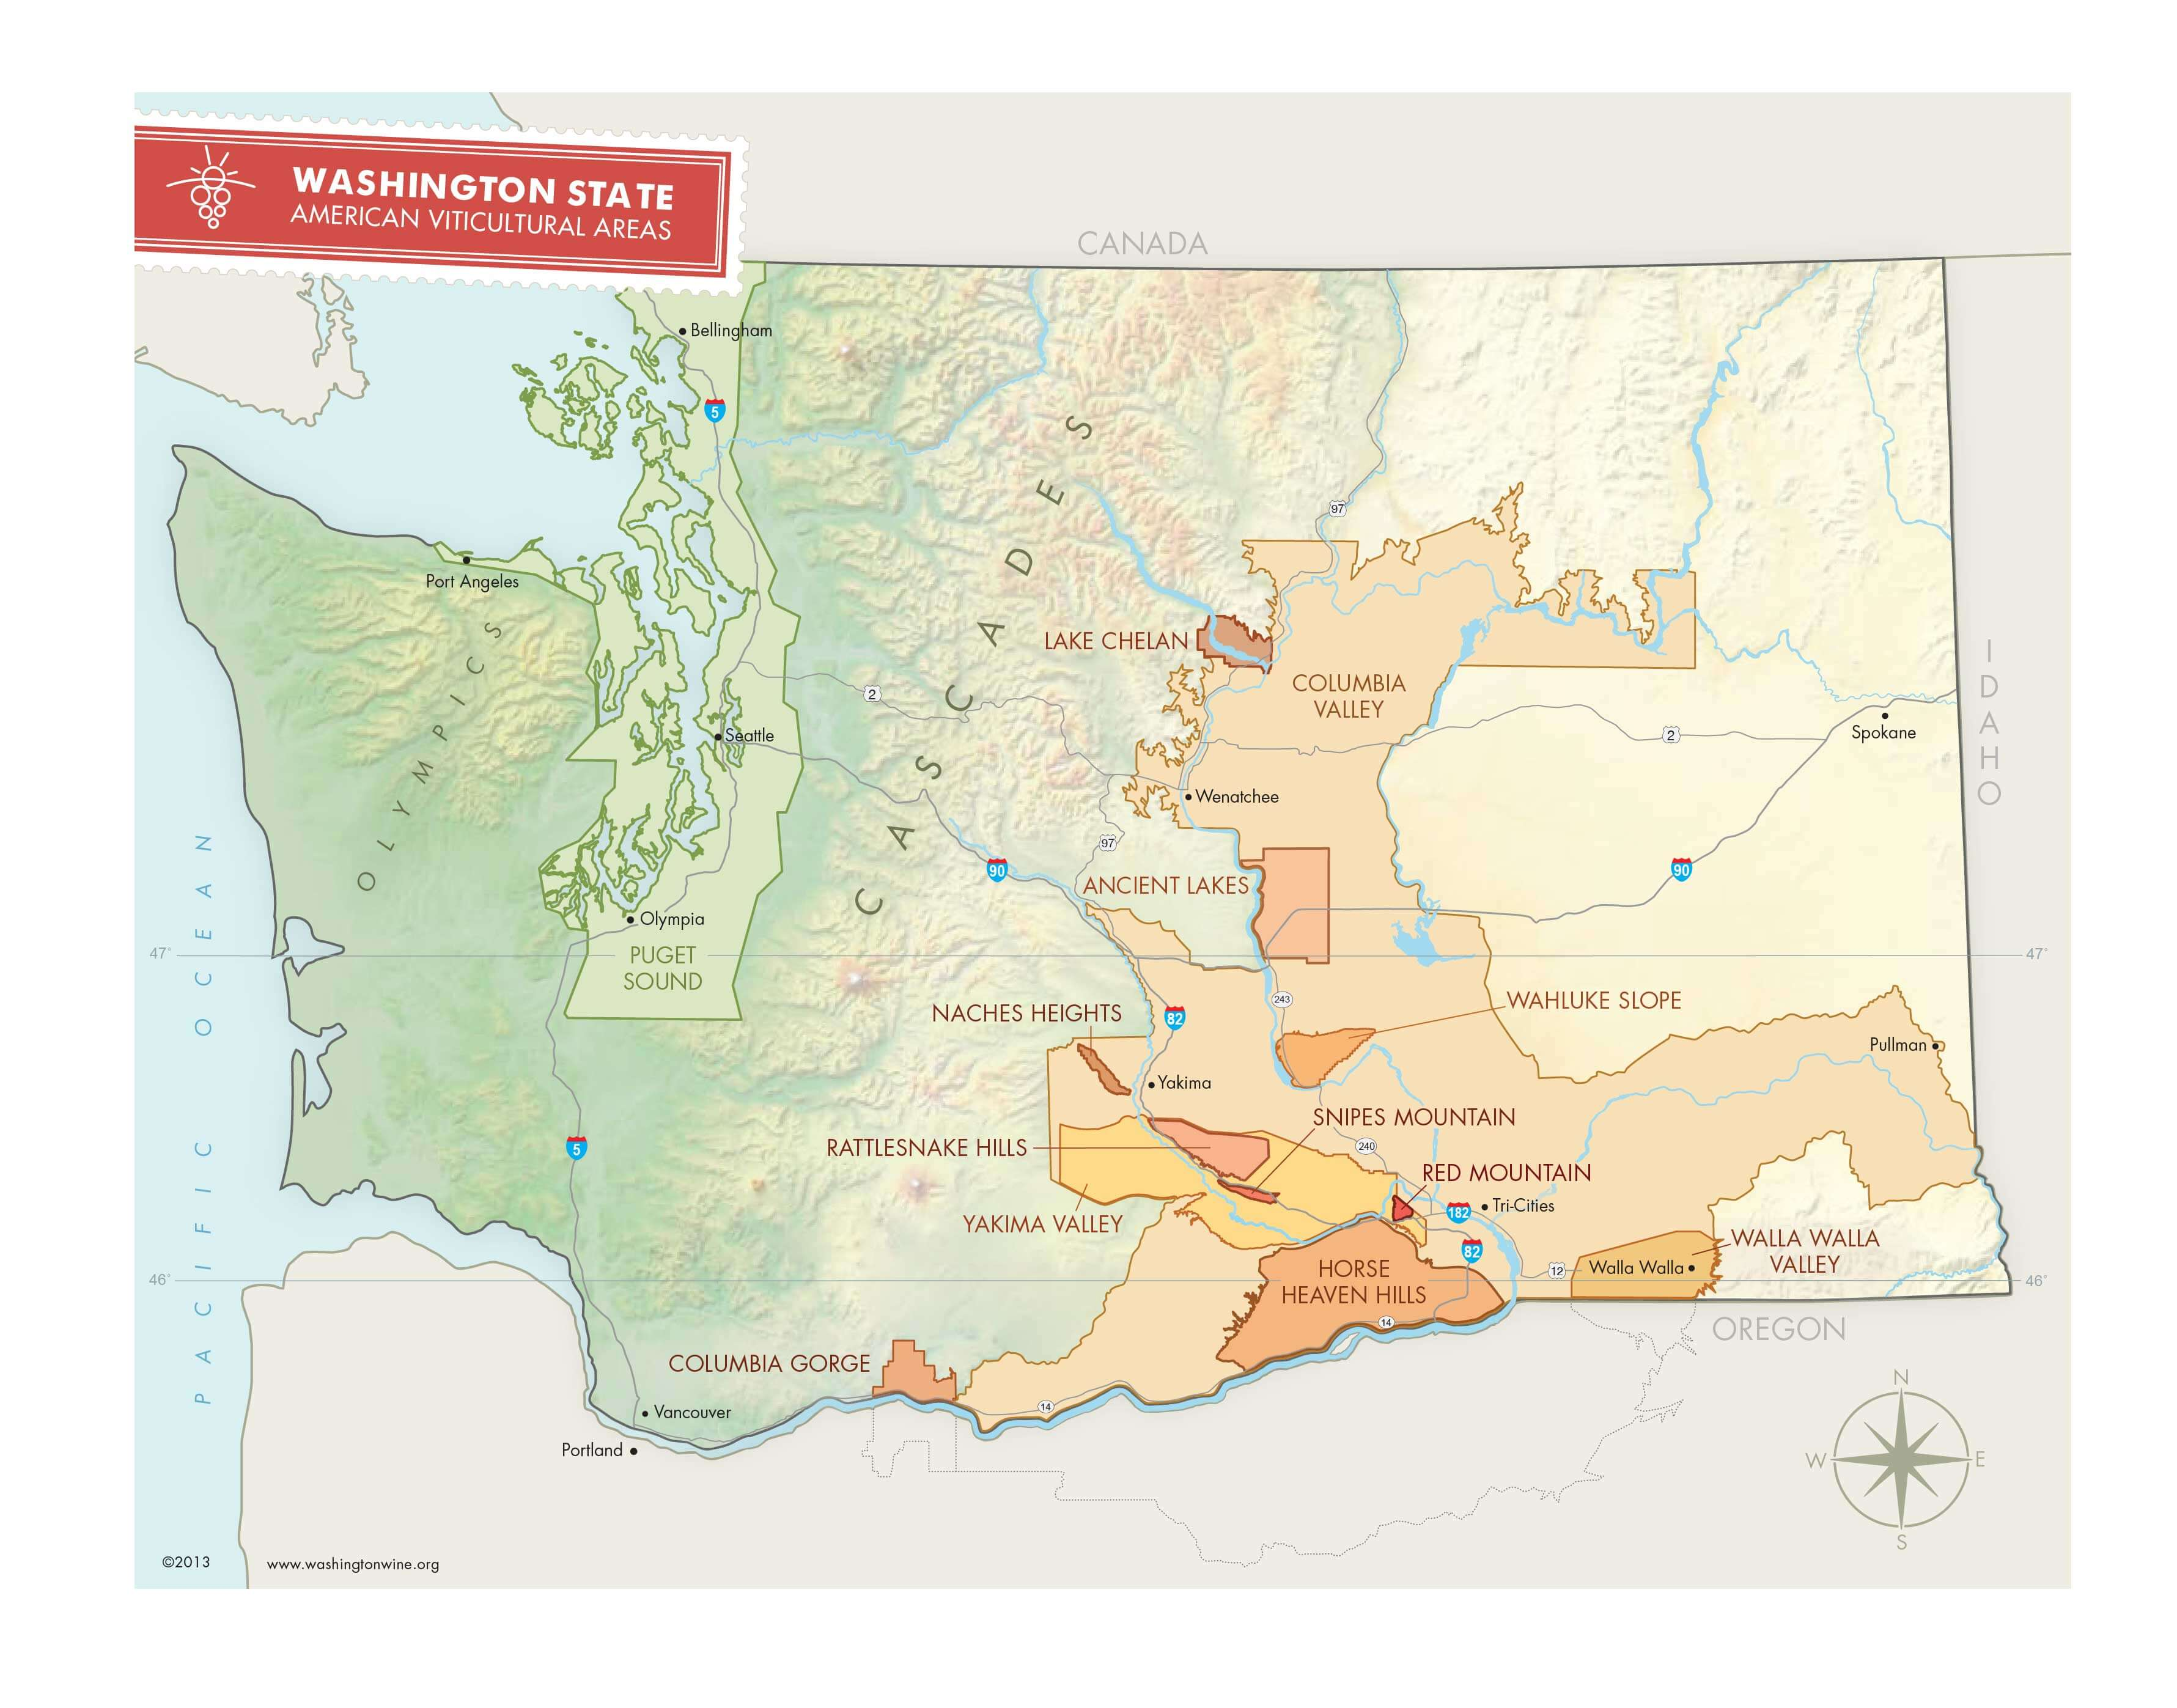 a map detailing all the different wine regions inside of the state of Washington